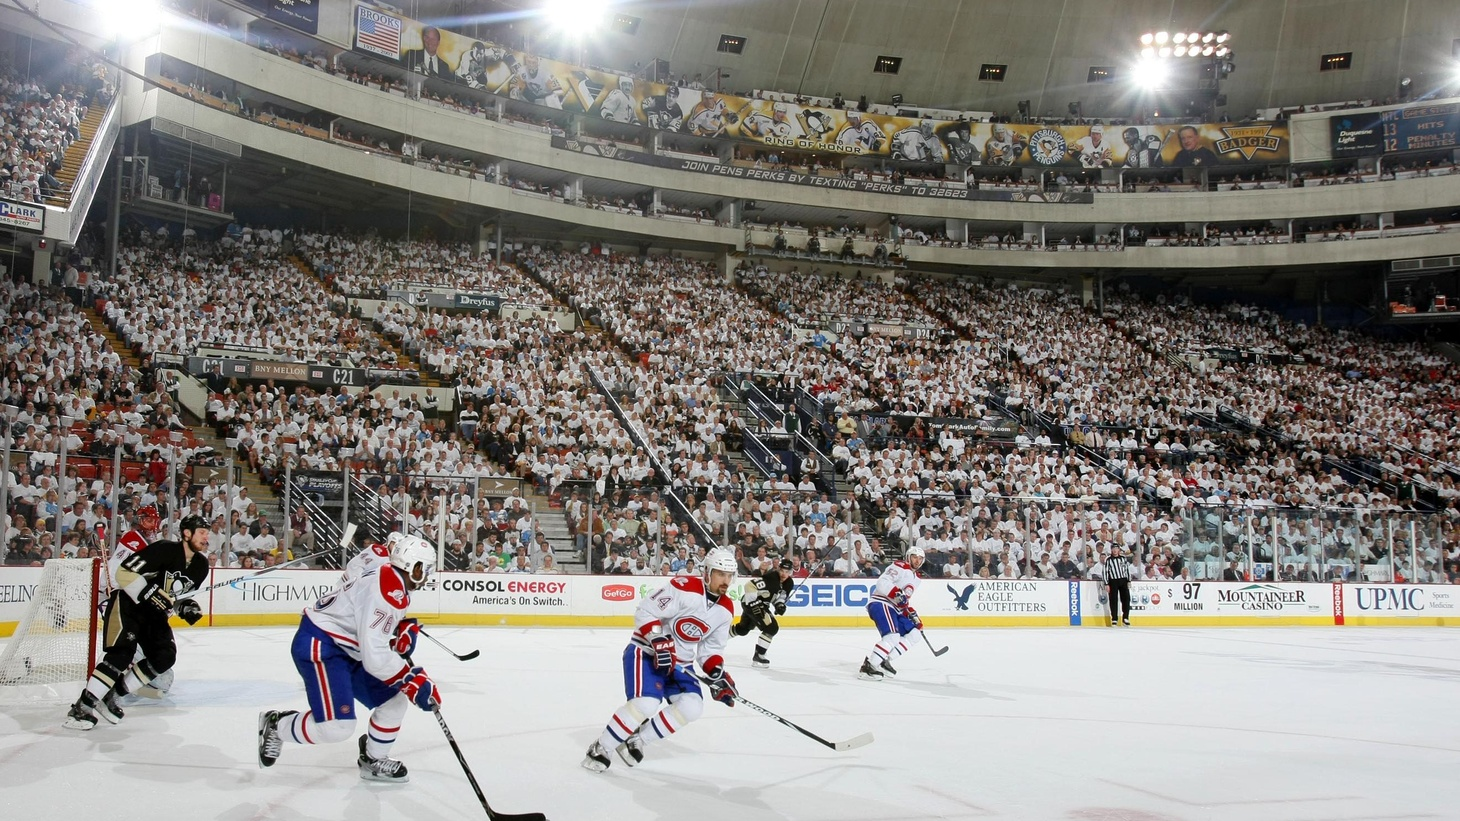 Two mirror clichés, bandied about for so long now that we say them in automatic drone tones that really don't have any truth behind them any more. The two clichés? Americans hate hockey. And….Americans hate soccer.